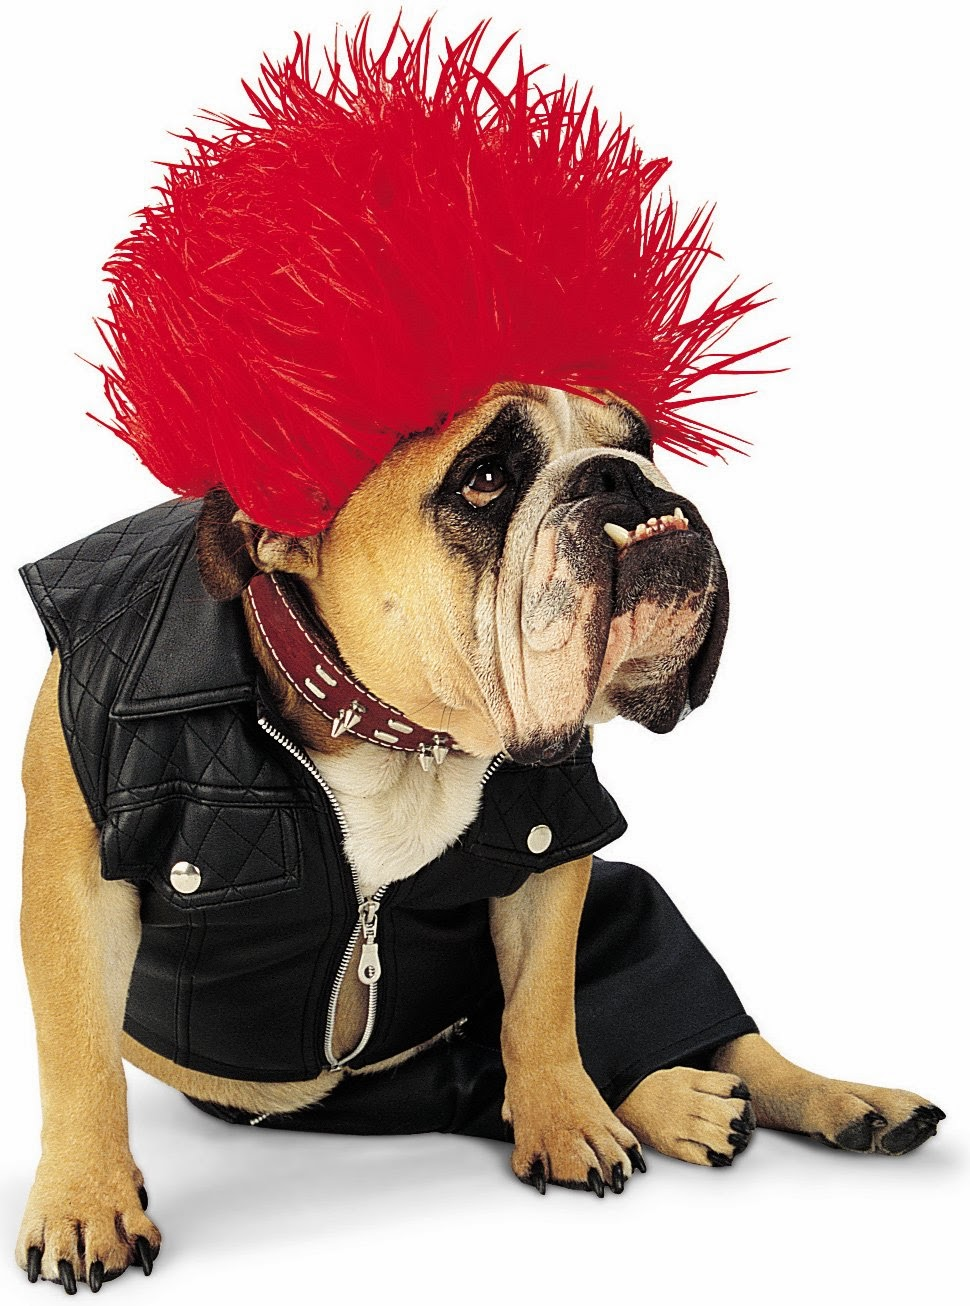 Petsofoz blog pet news information and product reviews best it can be more fun to dress your pooch or feisty feline than yourself hey maybe you could even wear matching costumes here are some of the best pet solutioingenieria Choice Image